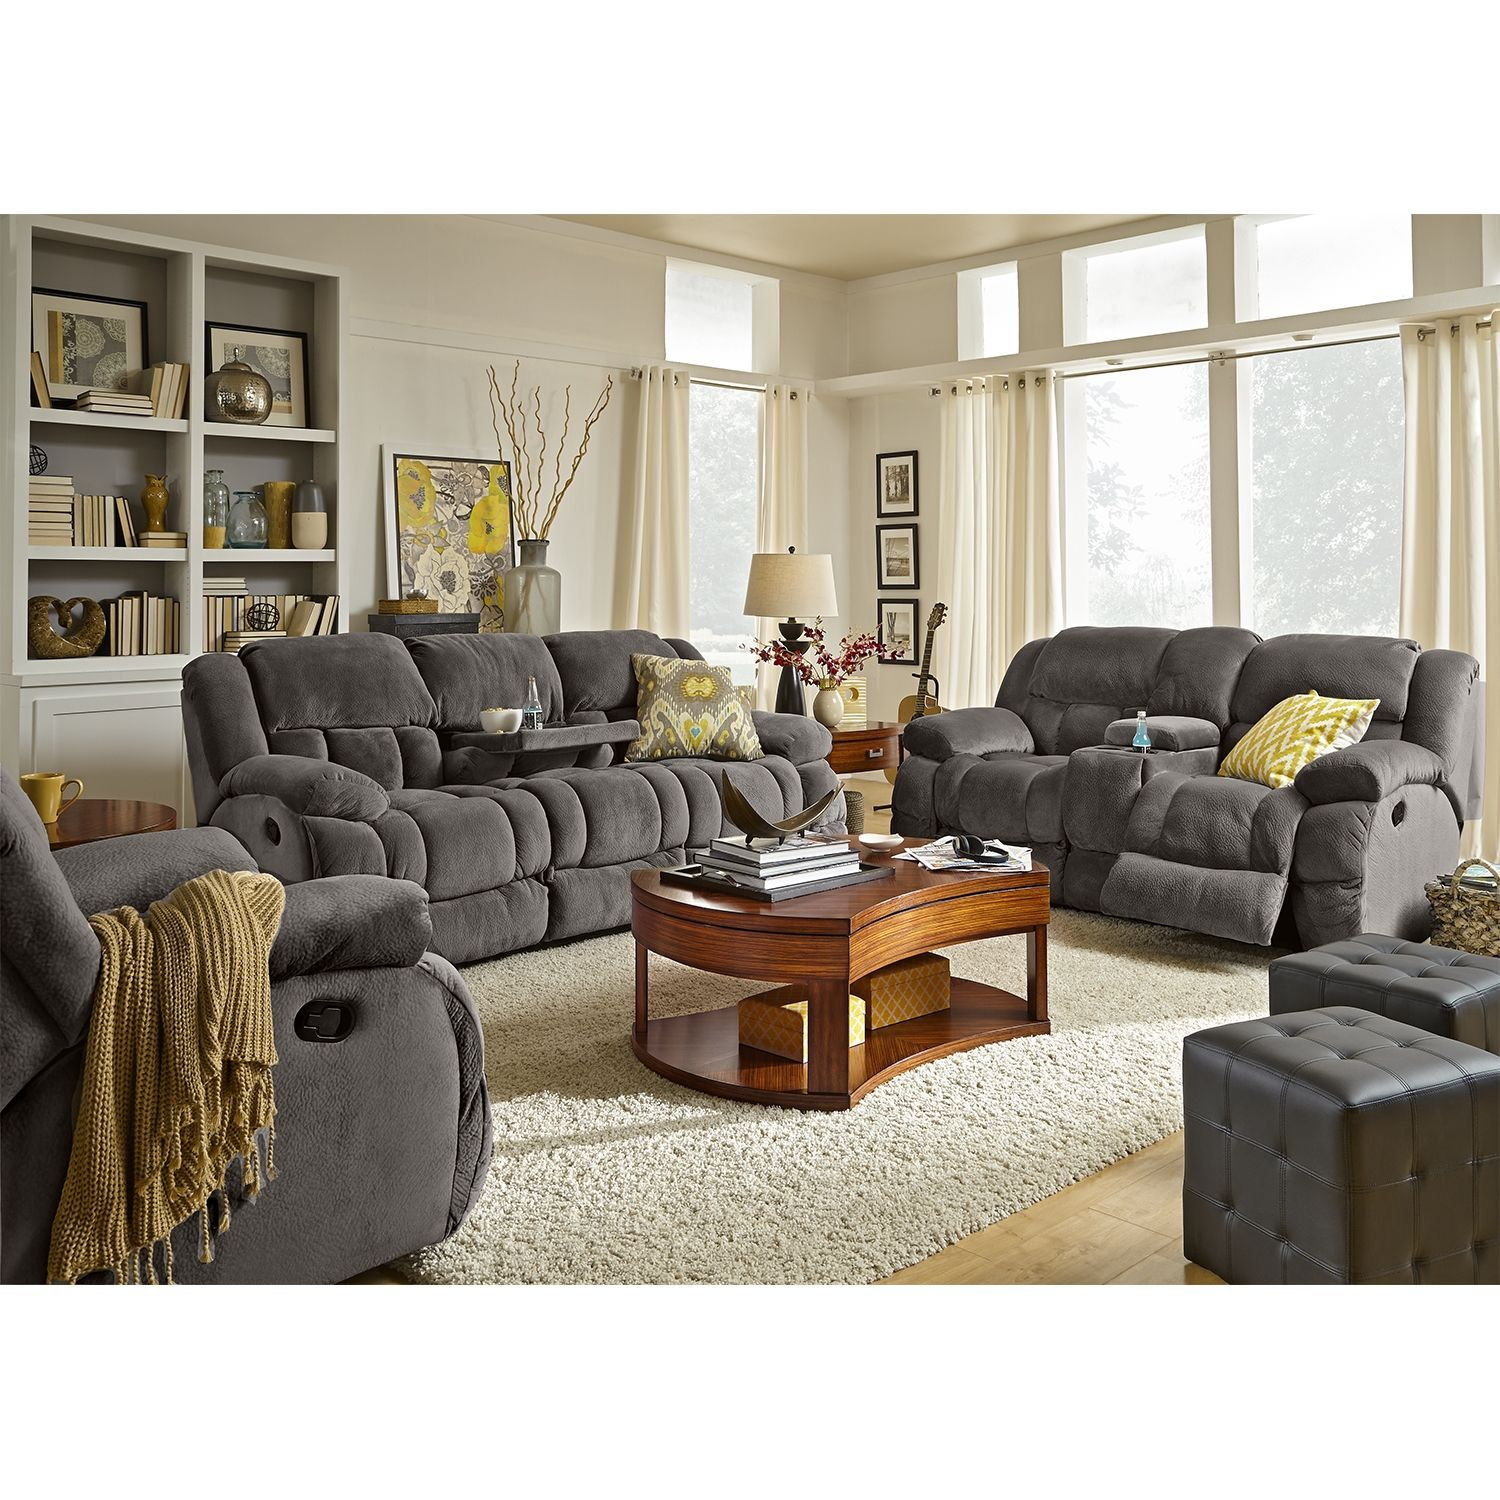 Park City 2 Pc Reclining Living Room W Glider Recliner Value City Furniture Comfortable Living Room Furniture Living Room Sets Furniture